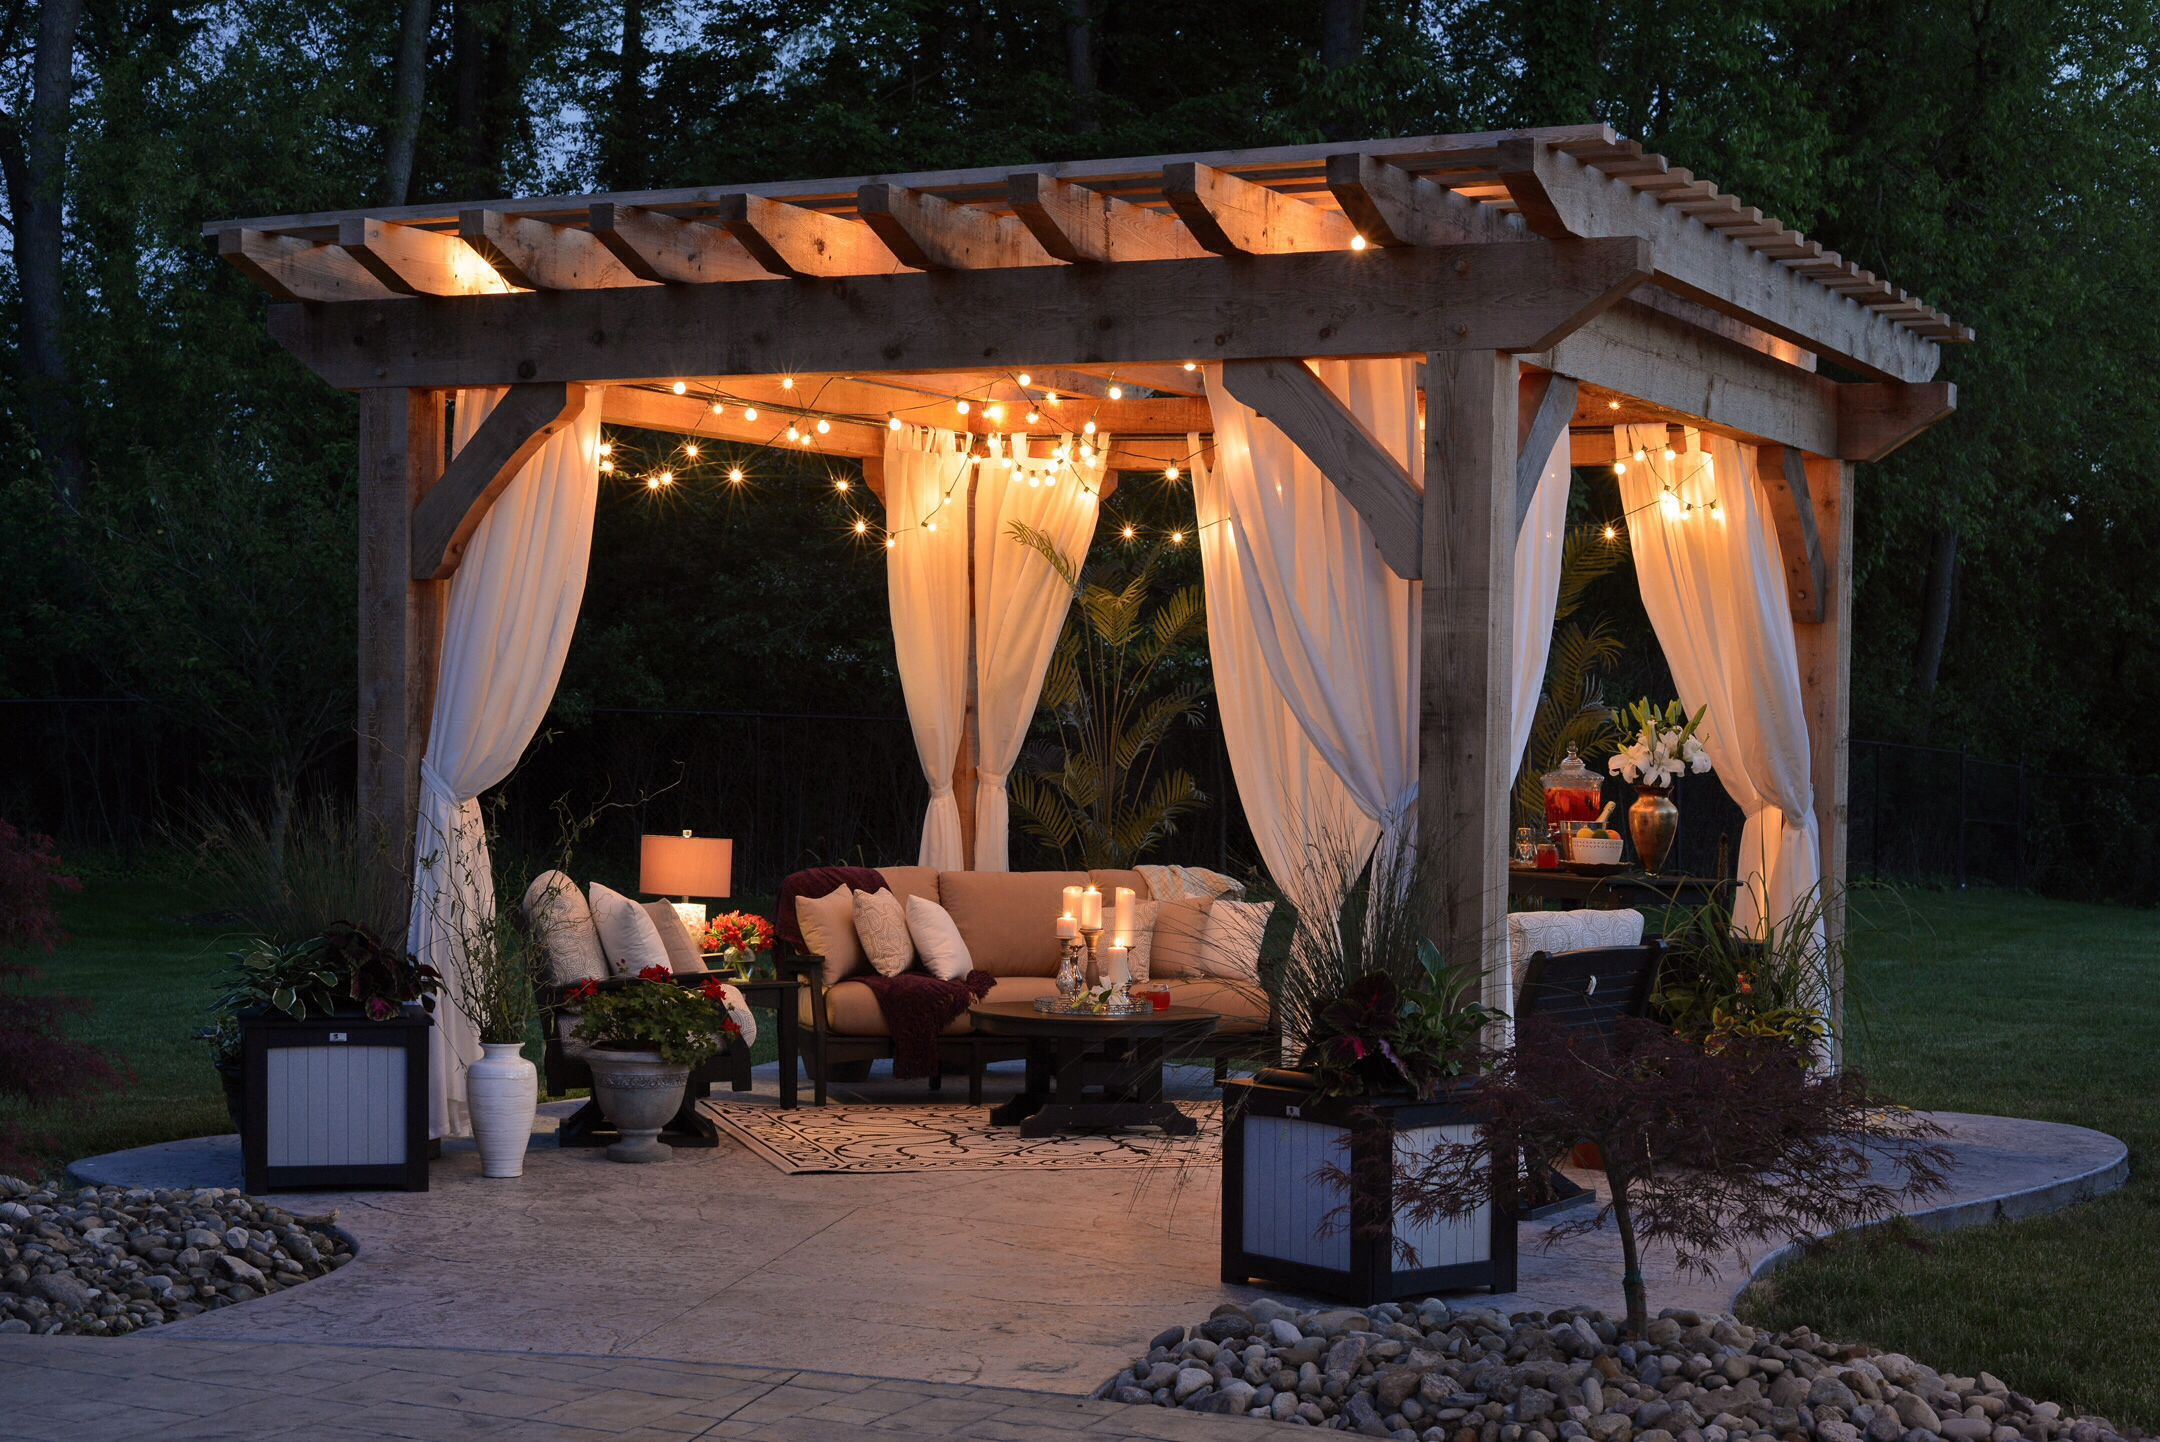 curtains pergoladiy disney and curtain blog parenting organizing mama outdoor pin pergola pinterest diy decor travel